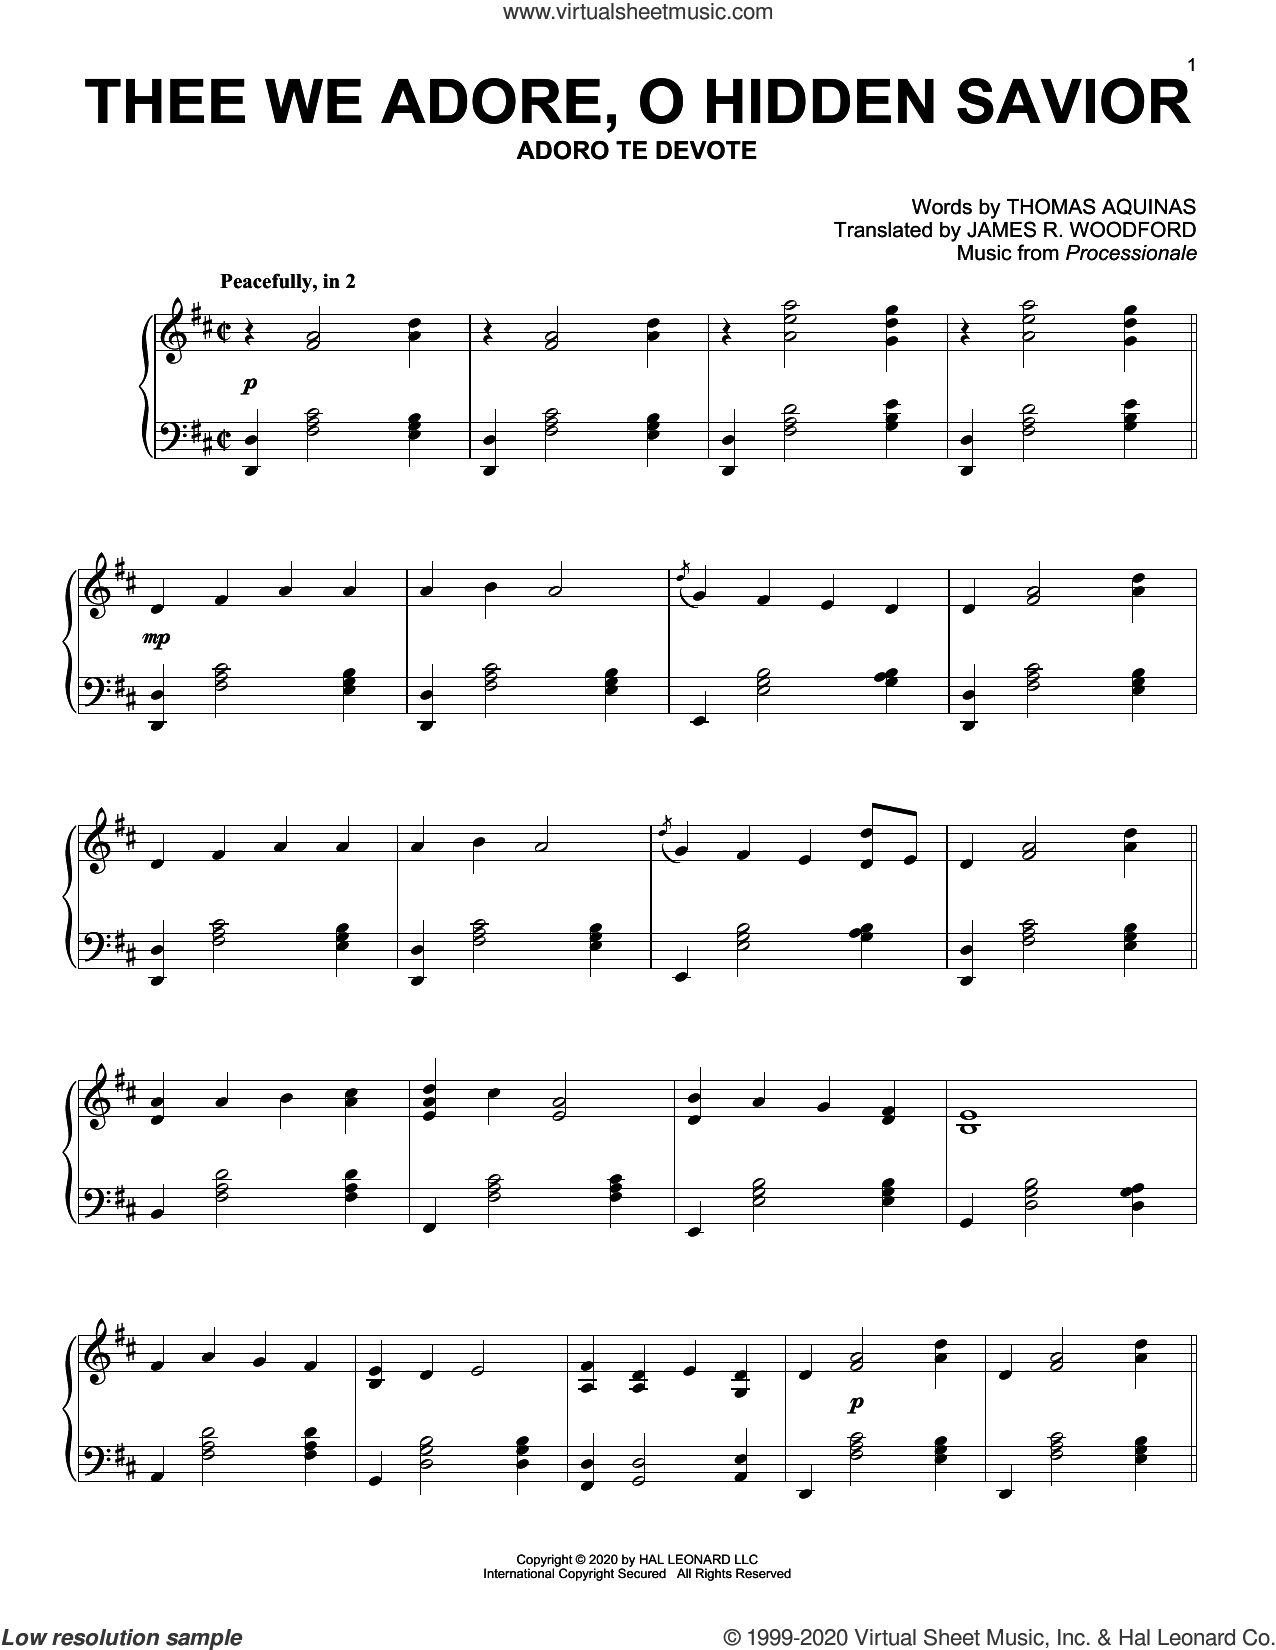 Thee We Adore, O Hidden Savior sheet music for piano solo by Thomas Aquinas, James R. Woodford and Processionale, intermediate skill level